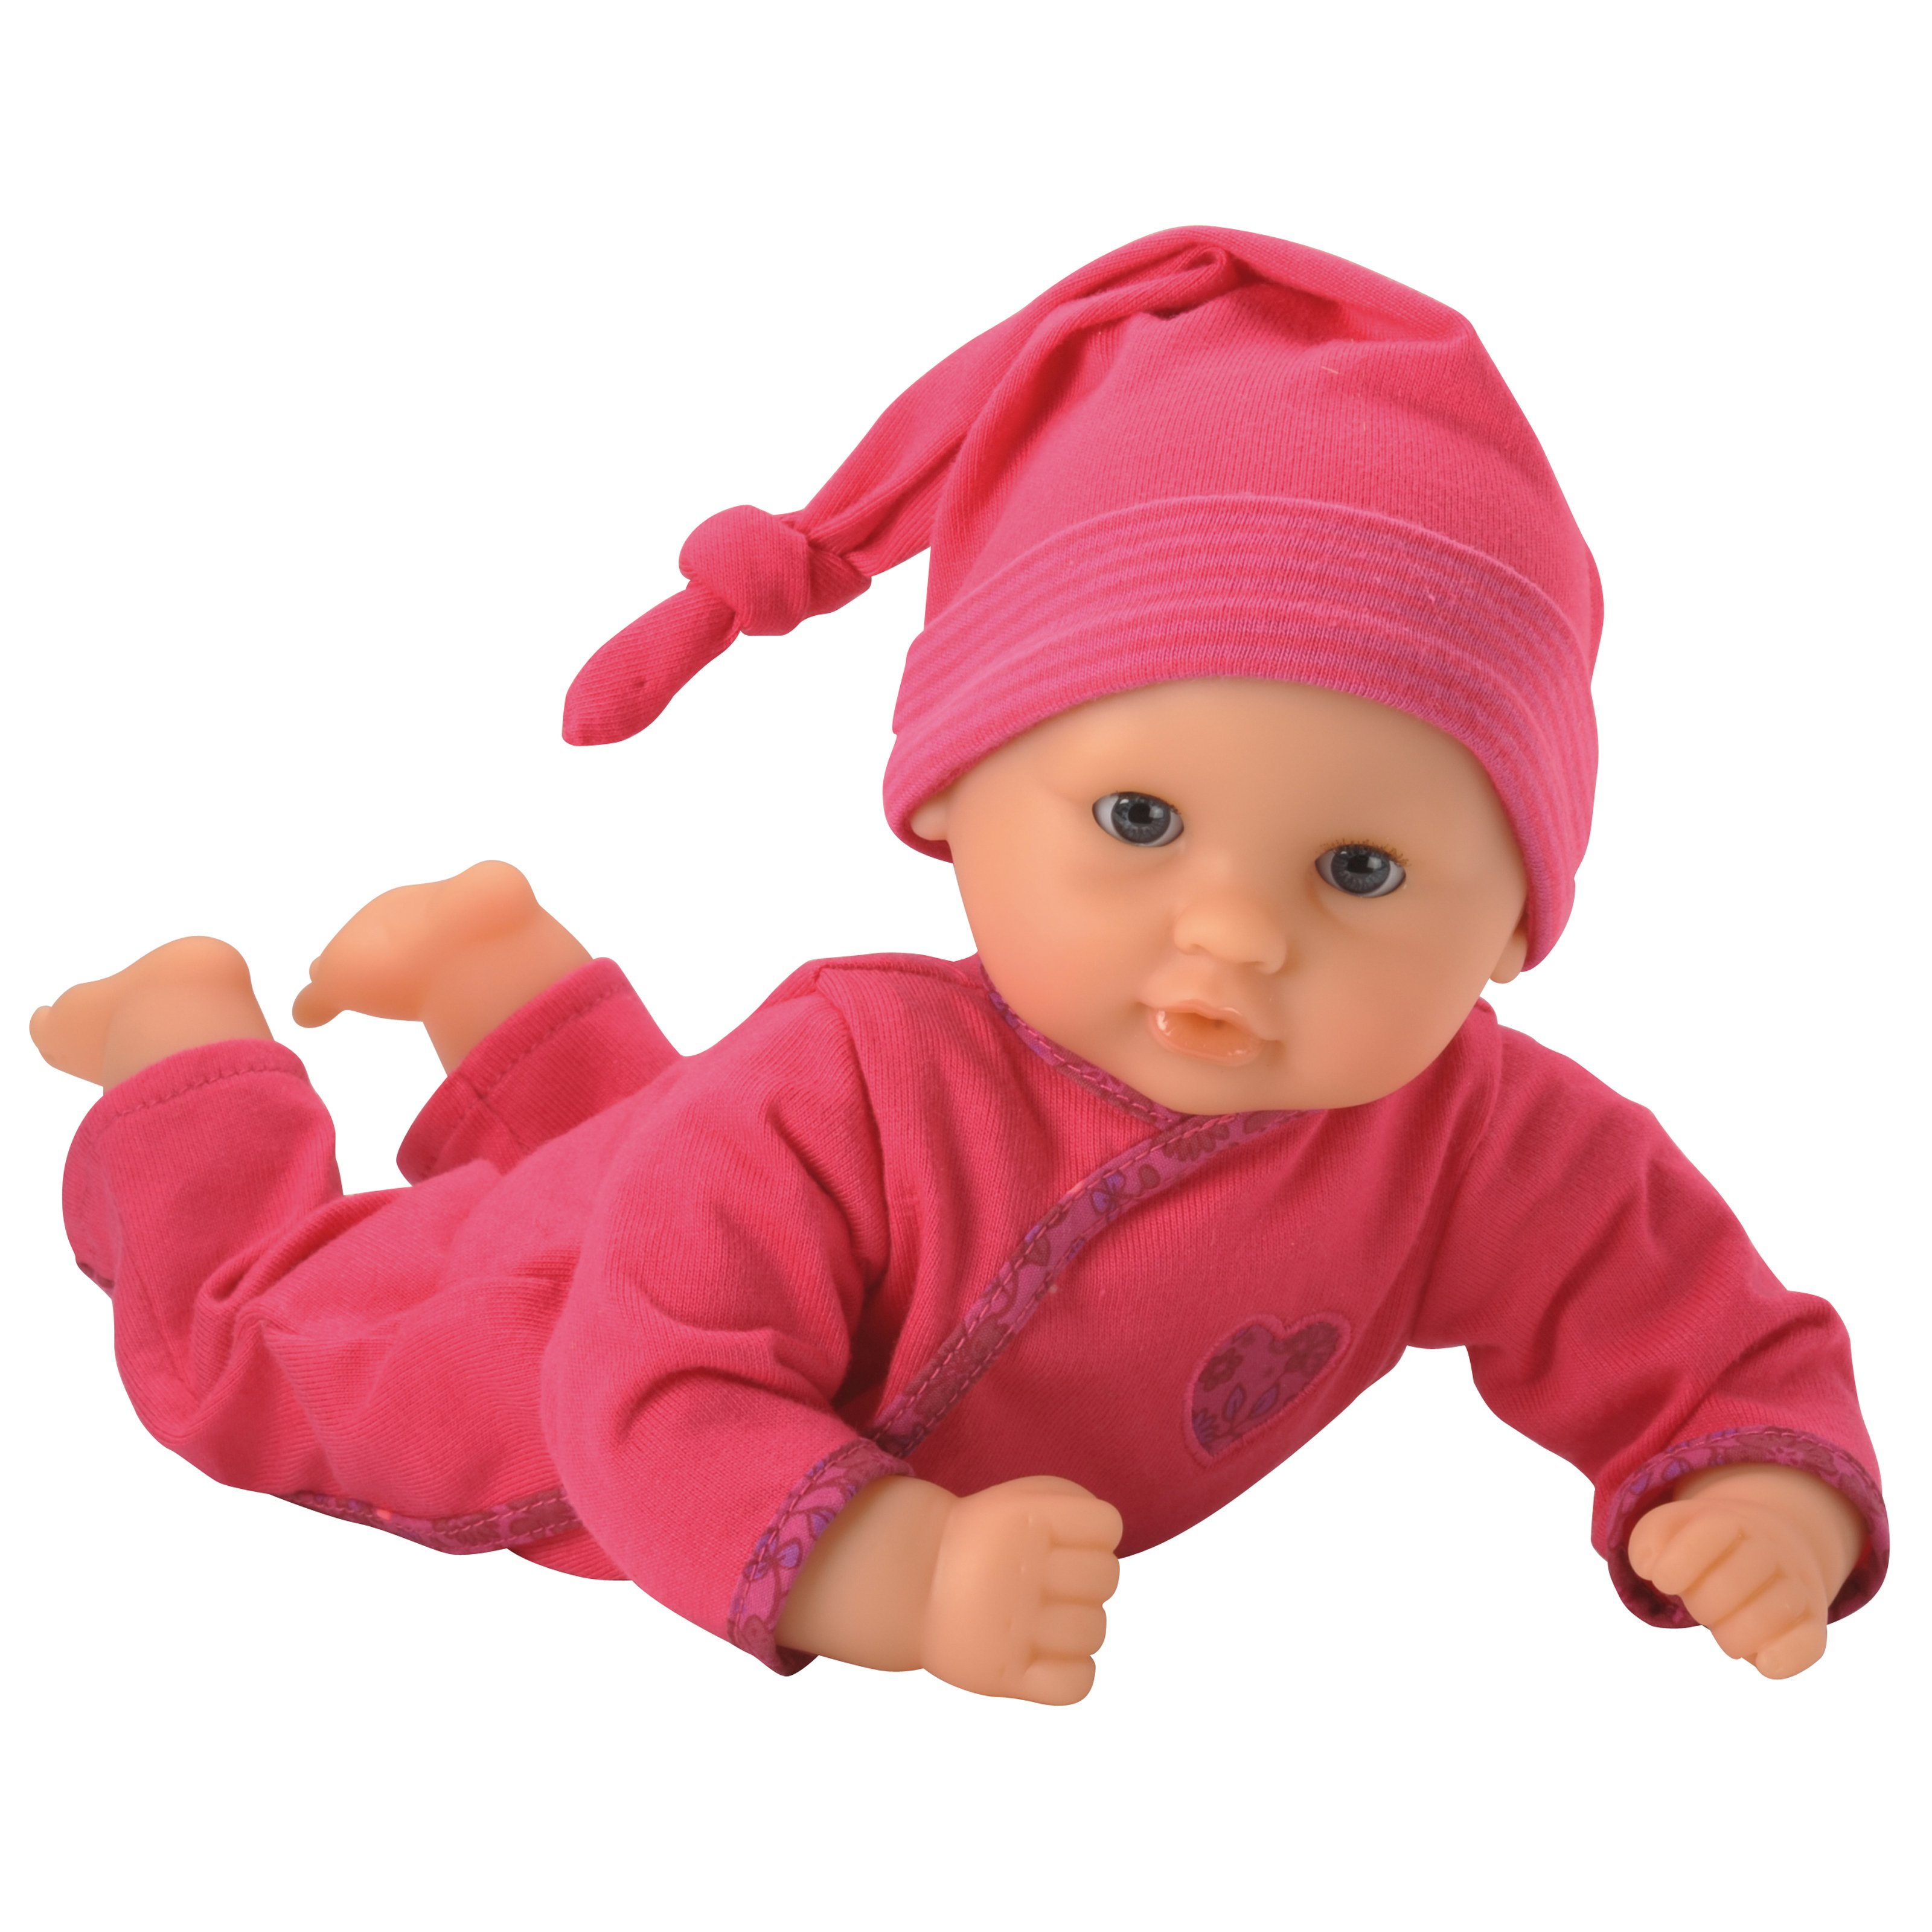 Corolle Mon Premier Calin Mon BB Calin Grenadine 12 in. Doll